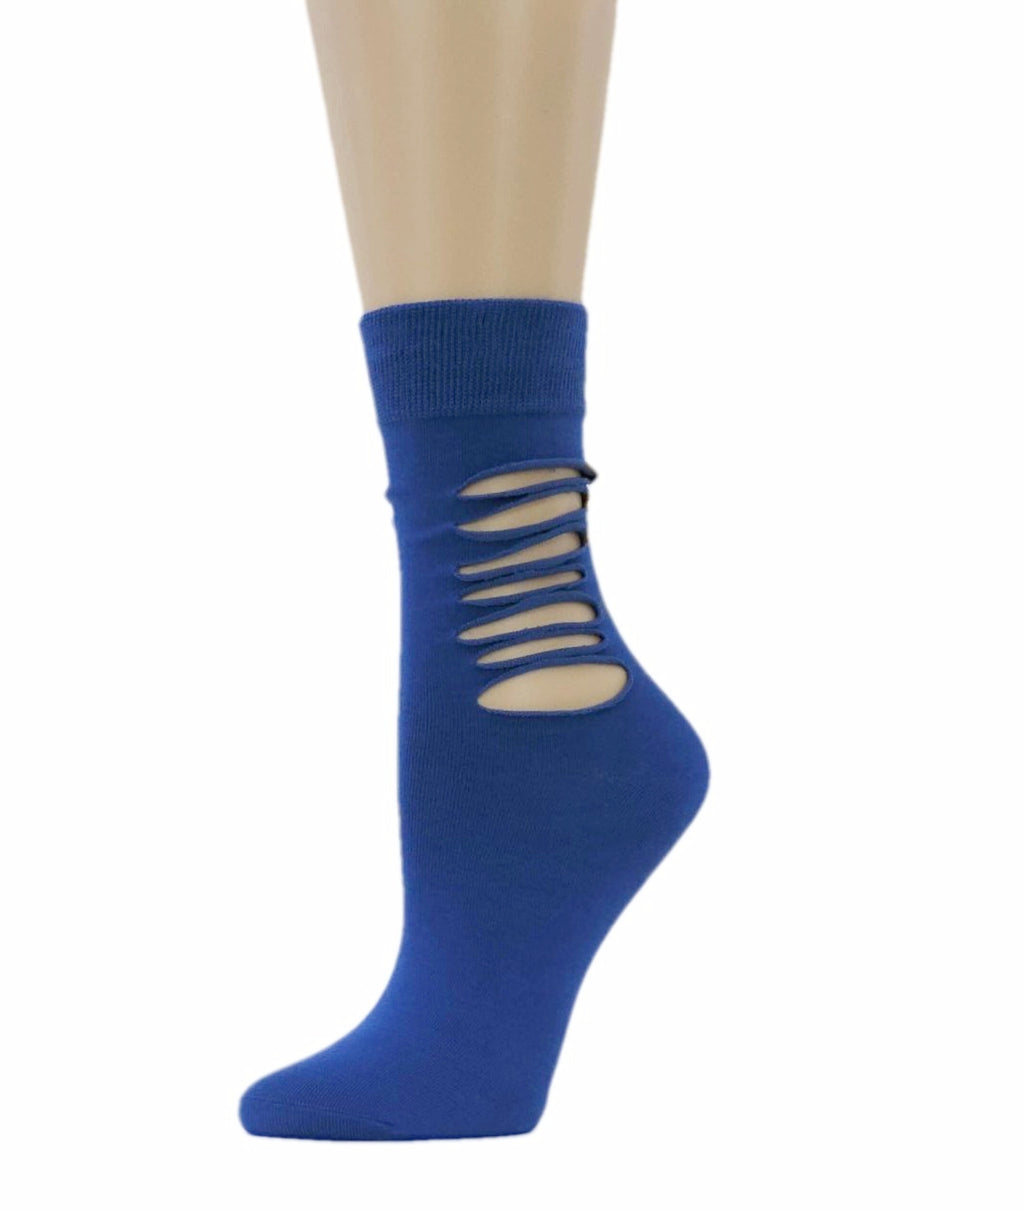 Ripped Royal Blue Cotton Socks - Global Trendz Fashion®